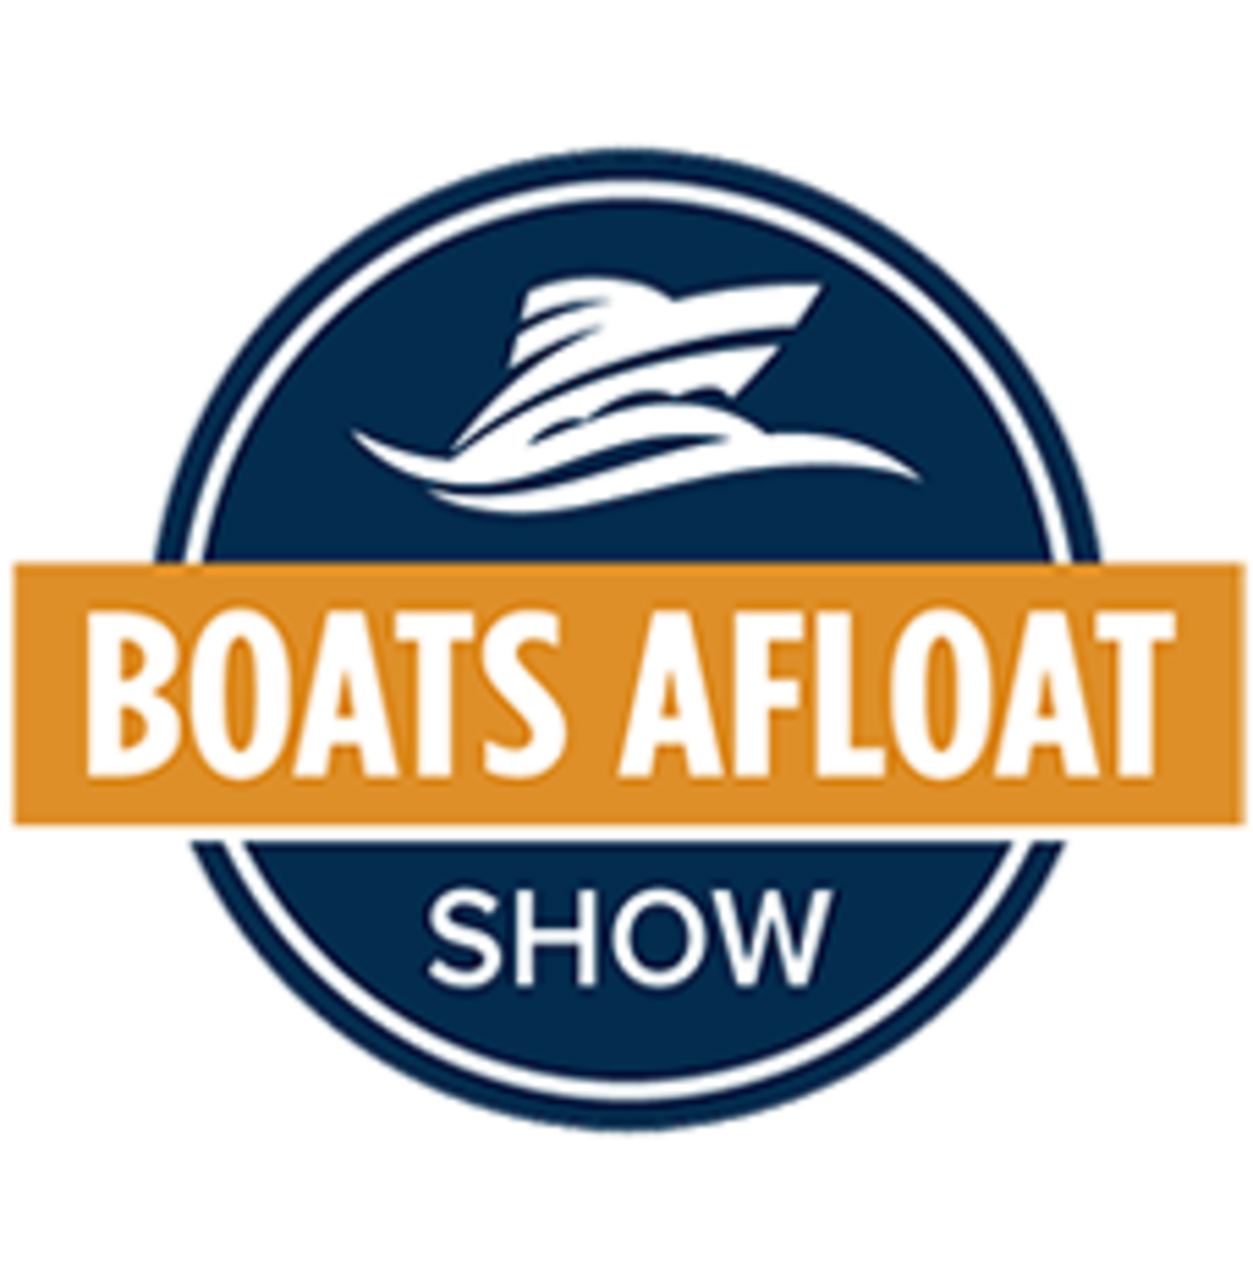 Boats Afloat Boat Show